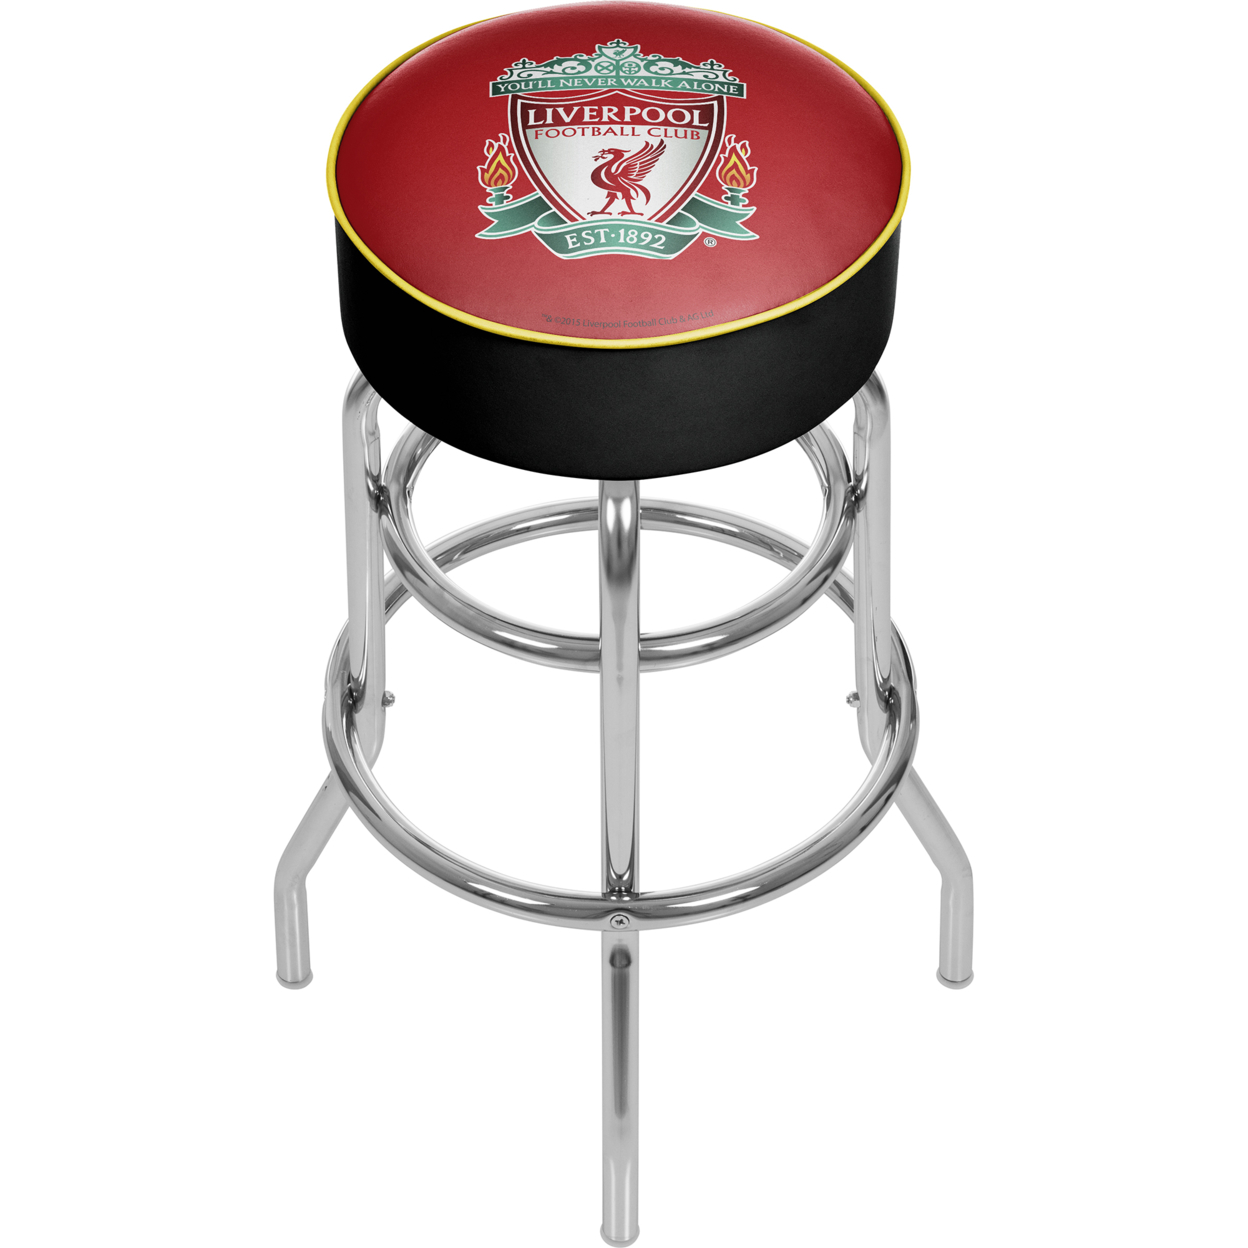 Premier League Liverpool Football Club Chrome Padded Swivel Bar Stool 30 Inches High маска airhole s2 3 layer black